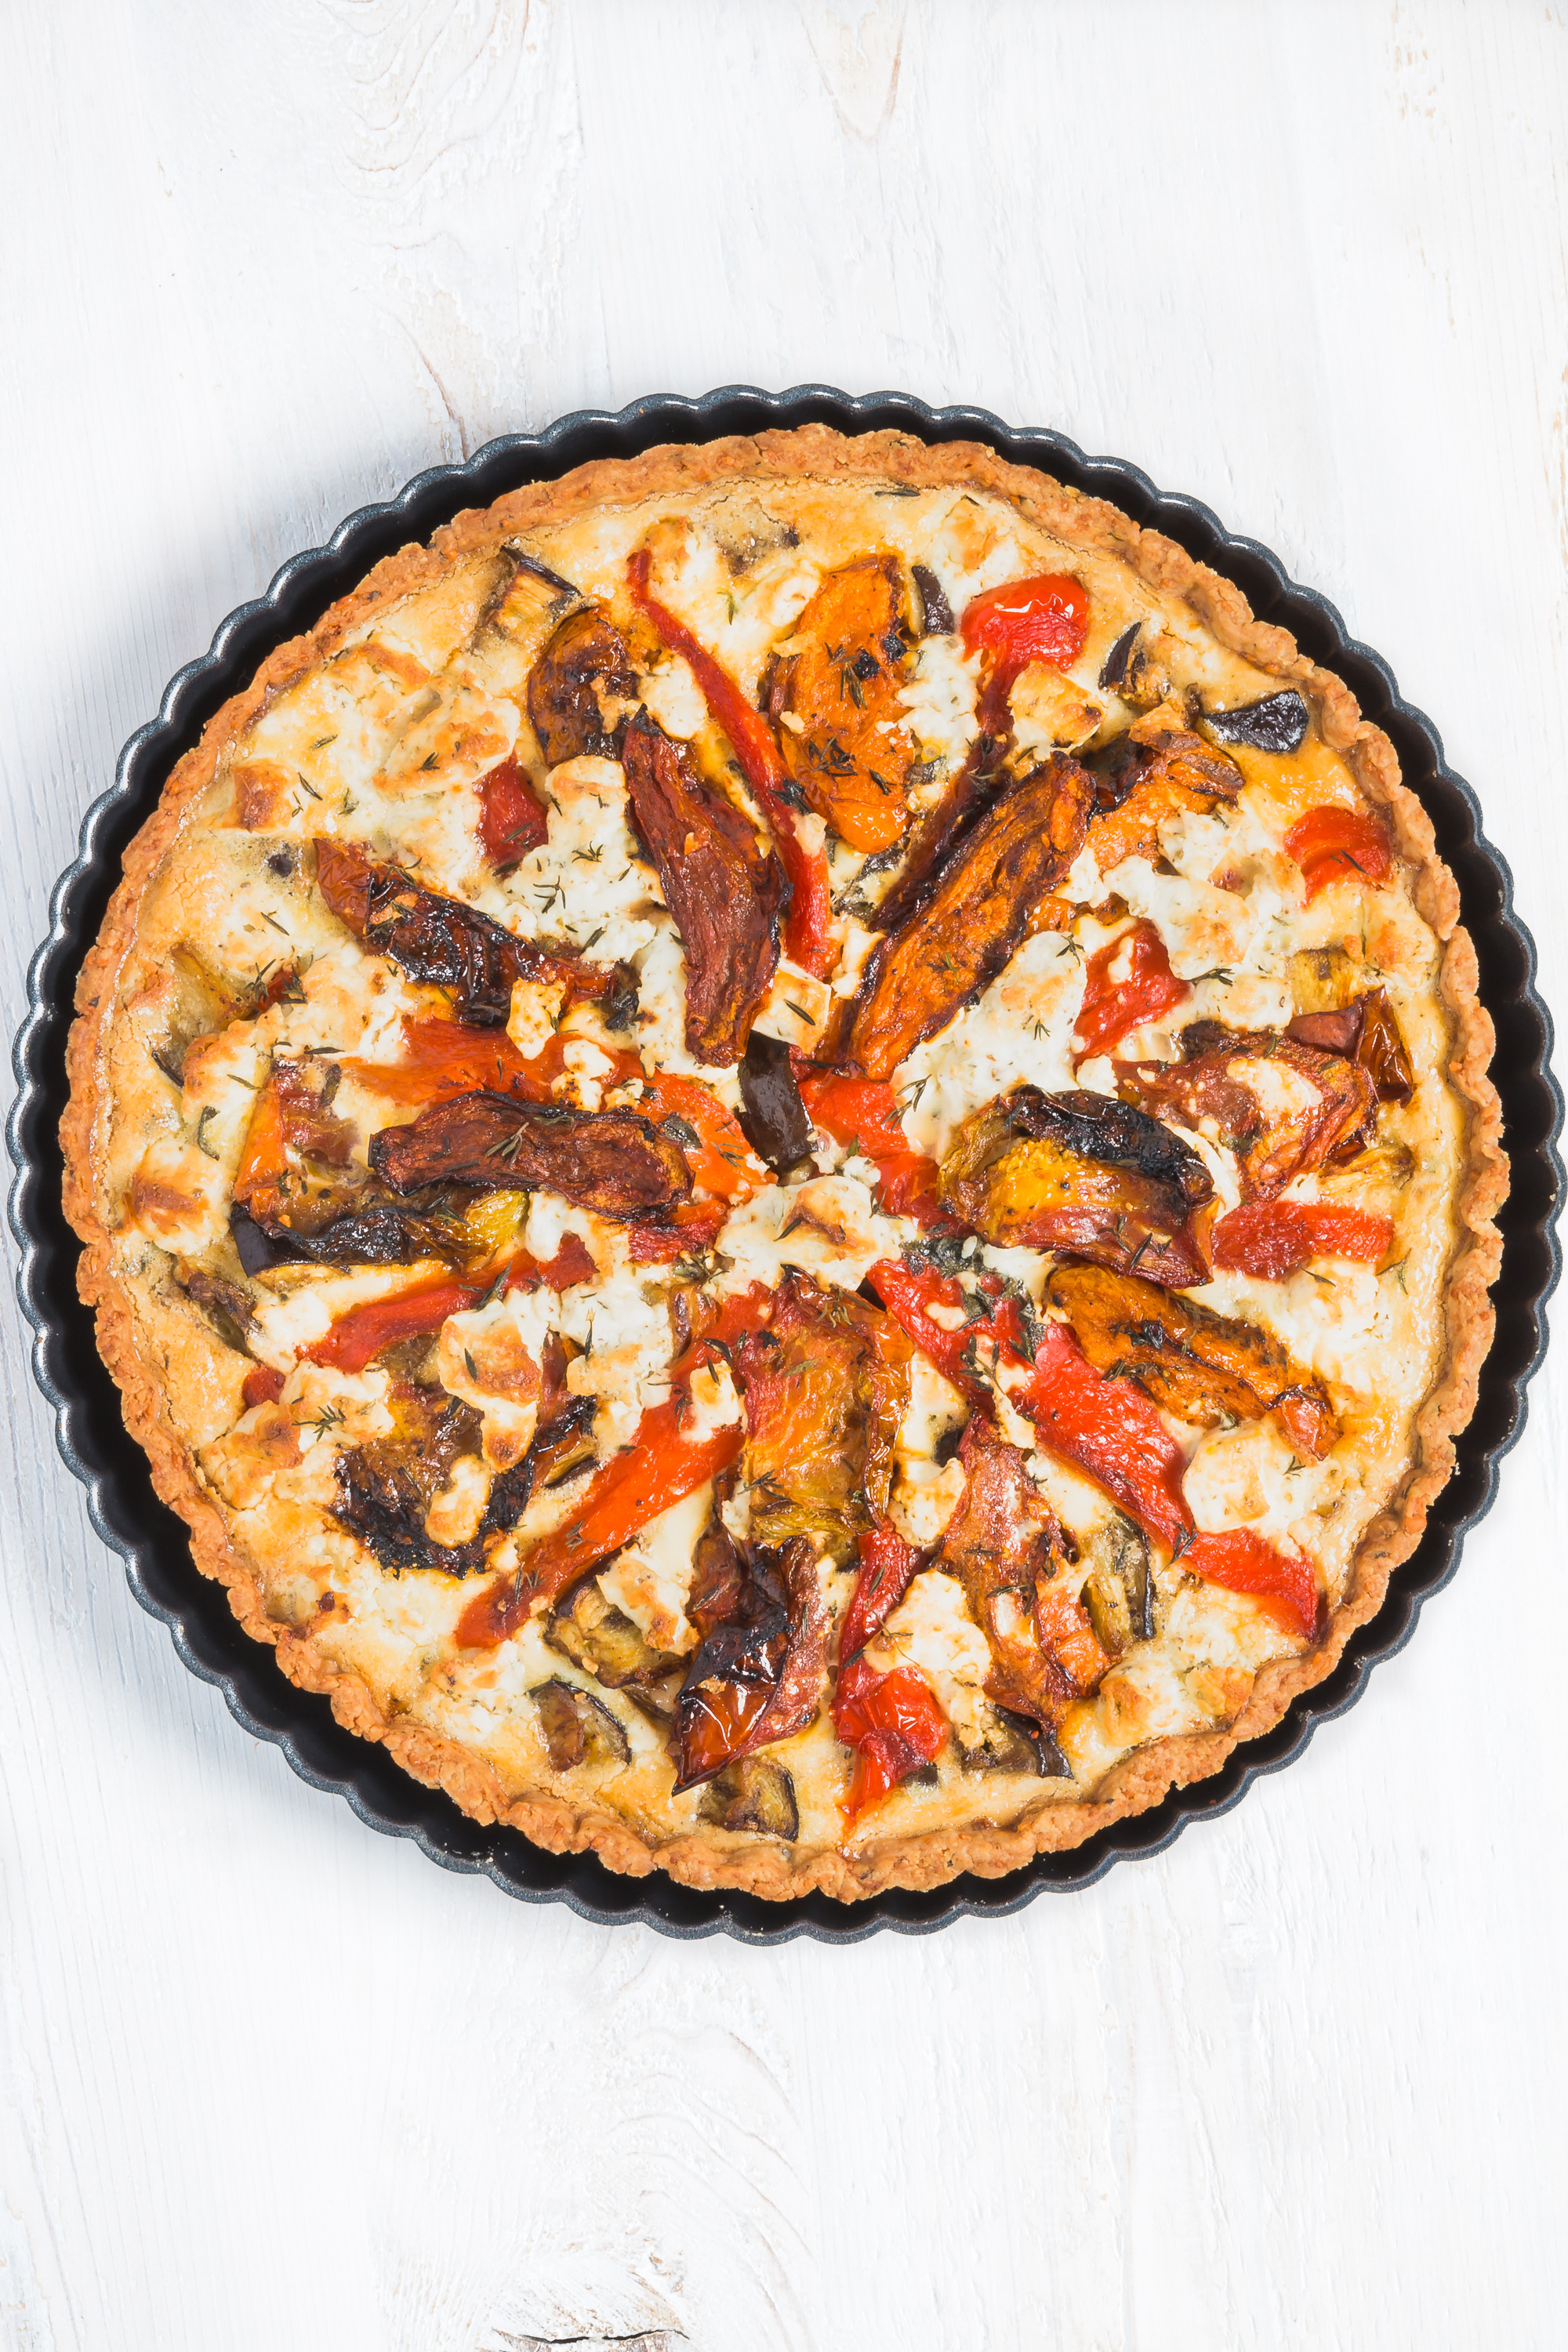 Roasted Vegetable Tart with Parmesan Crust - Celebrate summer's bounty with this Roasted Vegetable Tart with parmesan crust. It's filled with tomatoes, peppers & eggplant & can be enjoyed warm or cold. Click for RECIPE.